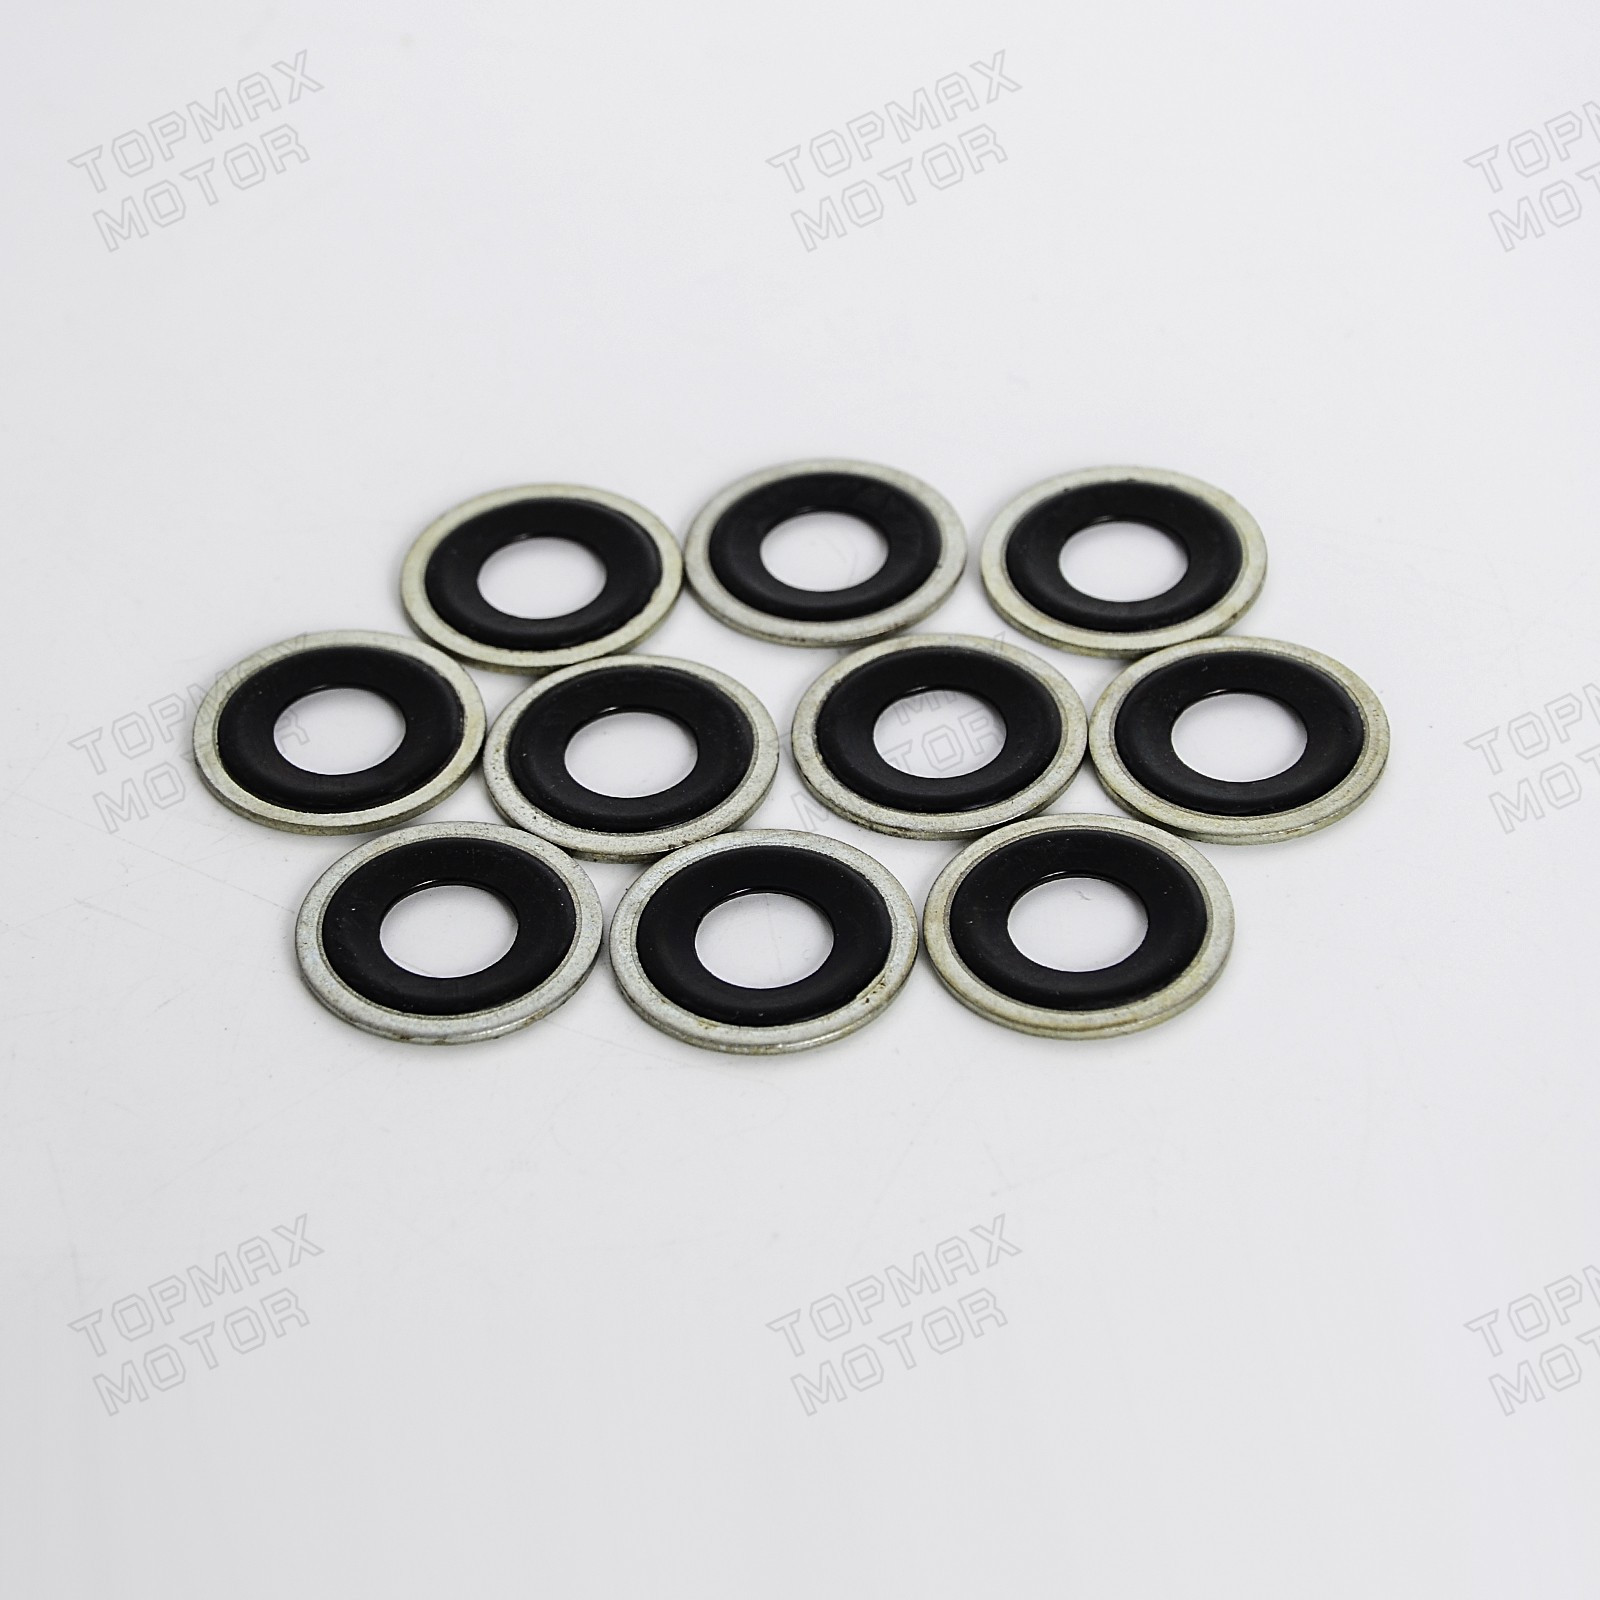 65274 10PCS Metal Rubber Oil Drain Plug Crush Washer Gaskets 5741252 For Buick